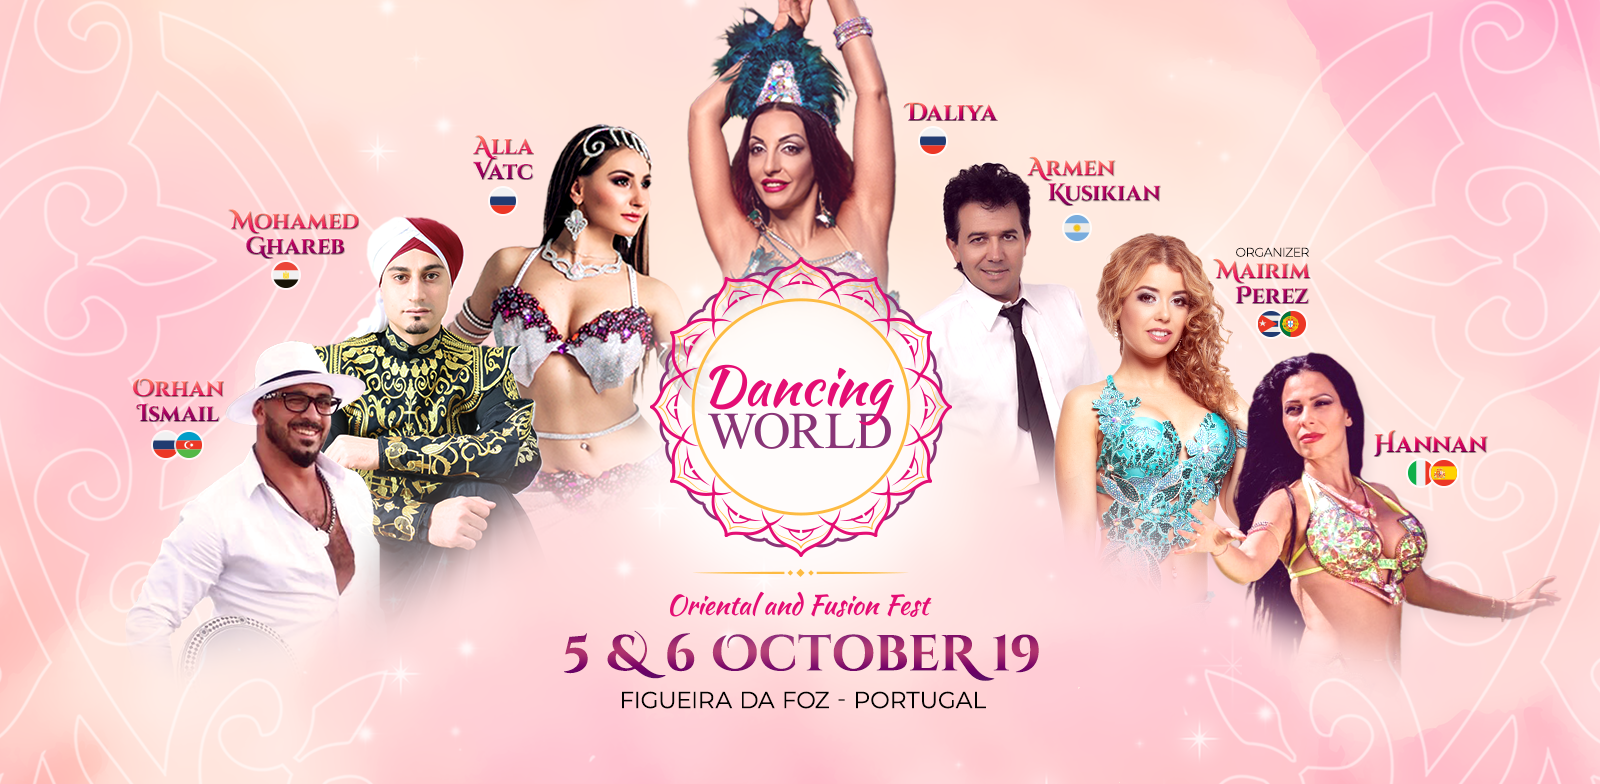 Dancing World - Oriental and Fusion Fest, 5 & 6 October 2019, Figueira da Foz - Portugal